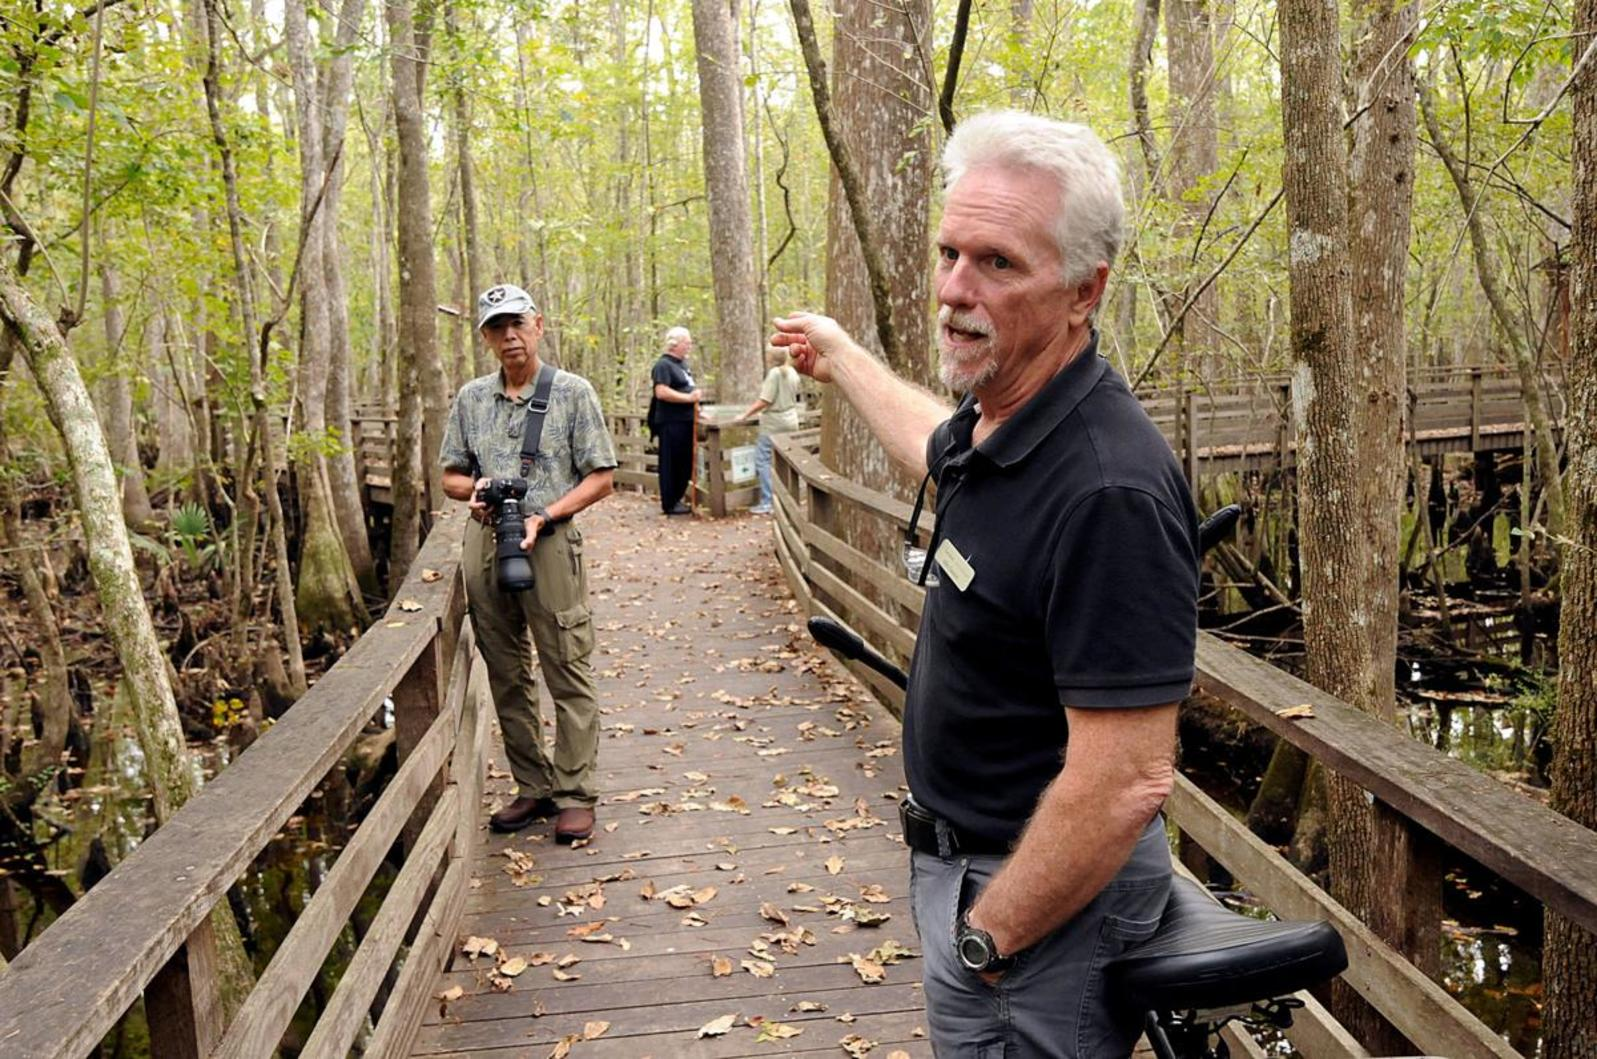 Mike Dawson answers questions from visitors on the Beidler Forest boardwalk